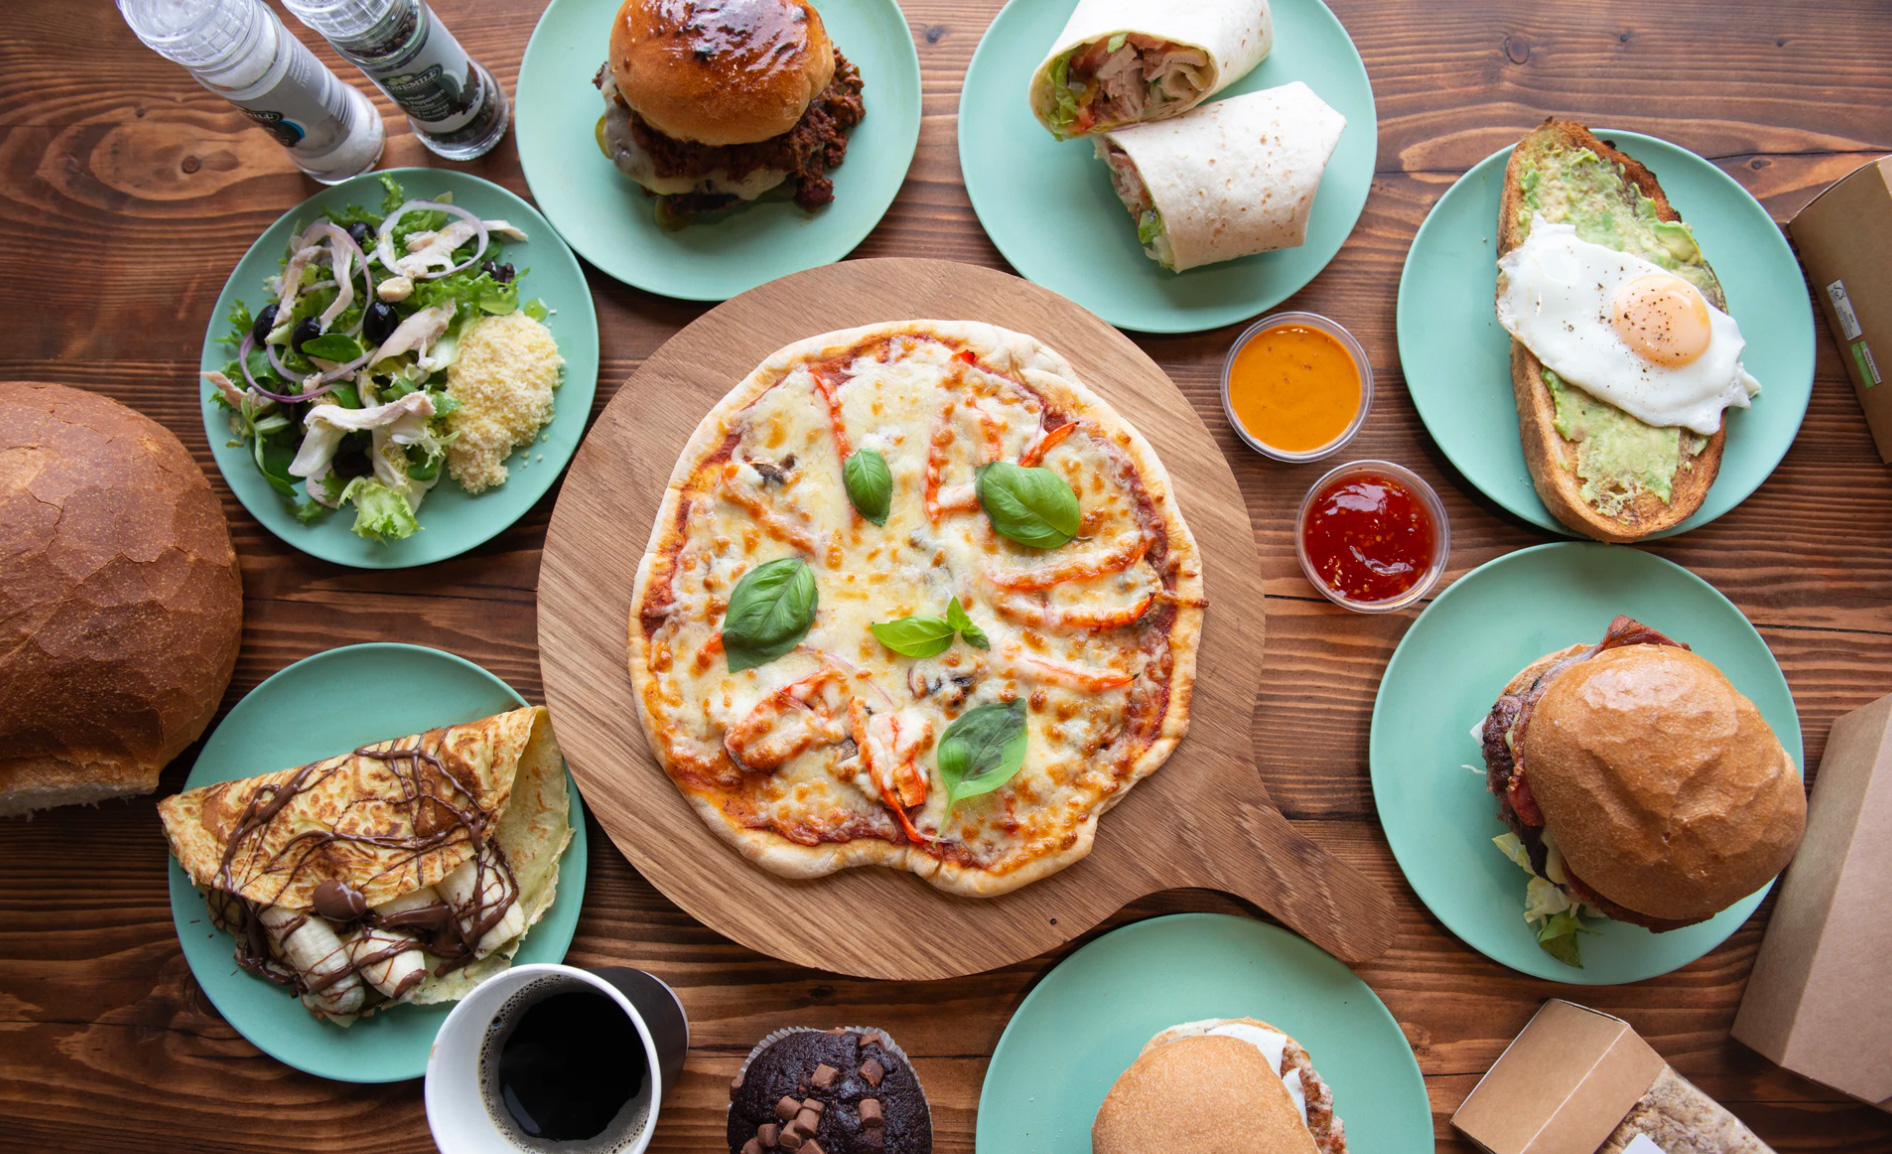 A table with many food selections of pizza, crepes, avocado toast, burgers